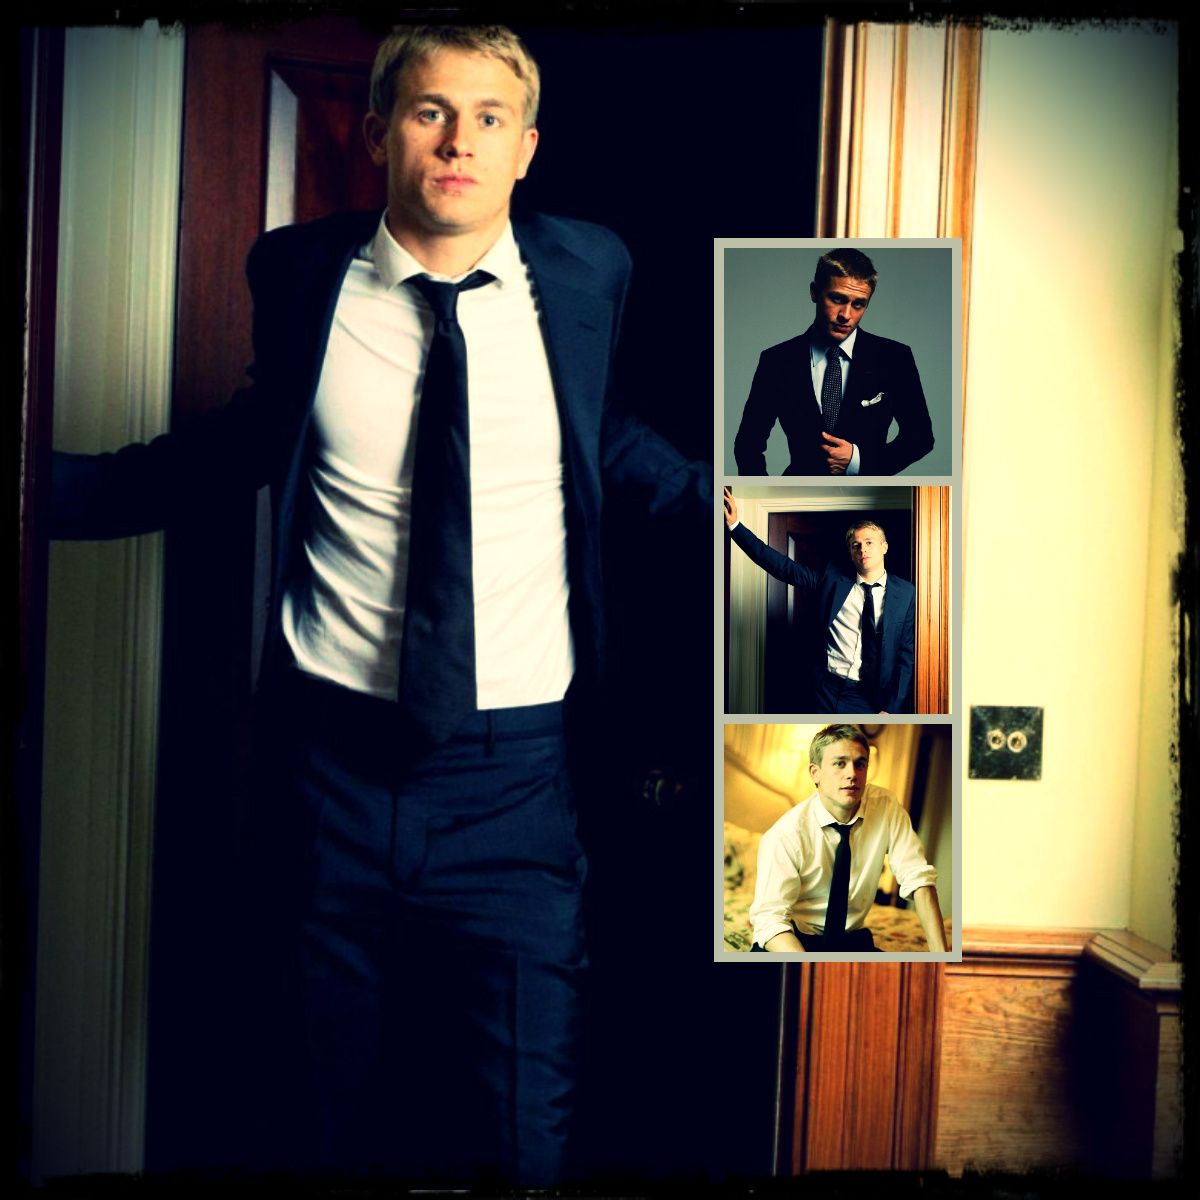 Young Charlie Hannum - now cast as Christian Grey